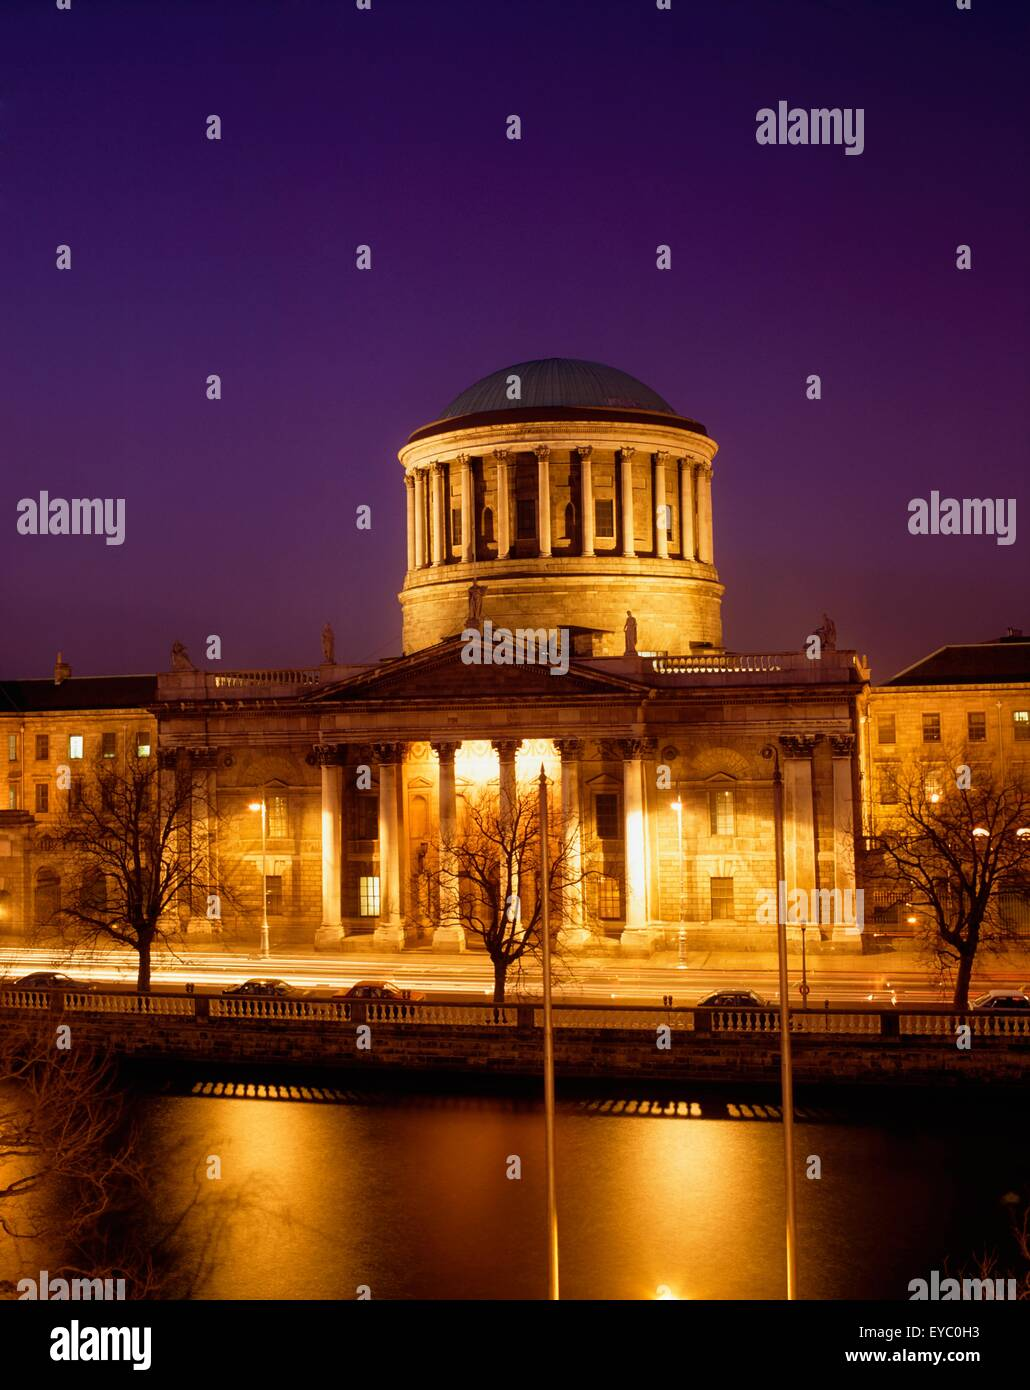 Dublin, The Four Courts - Stock Image